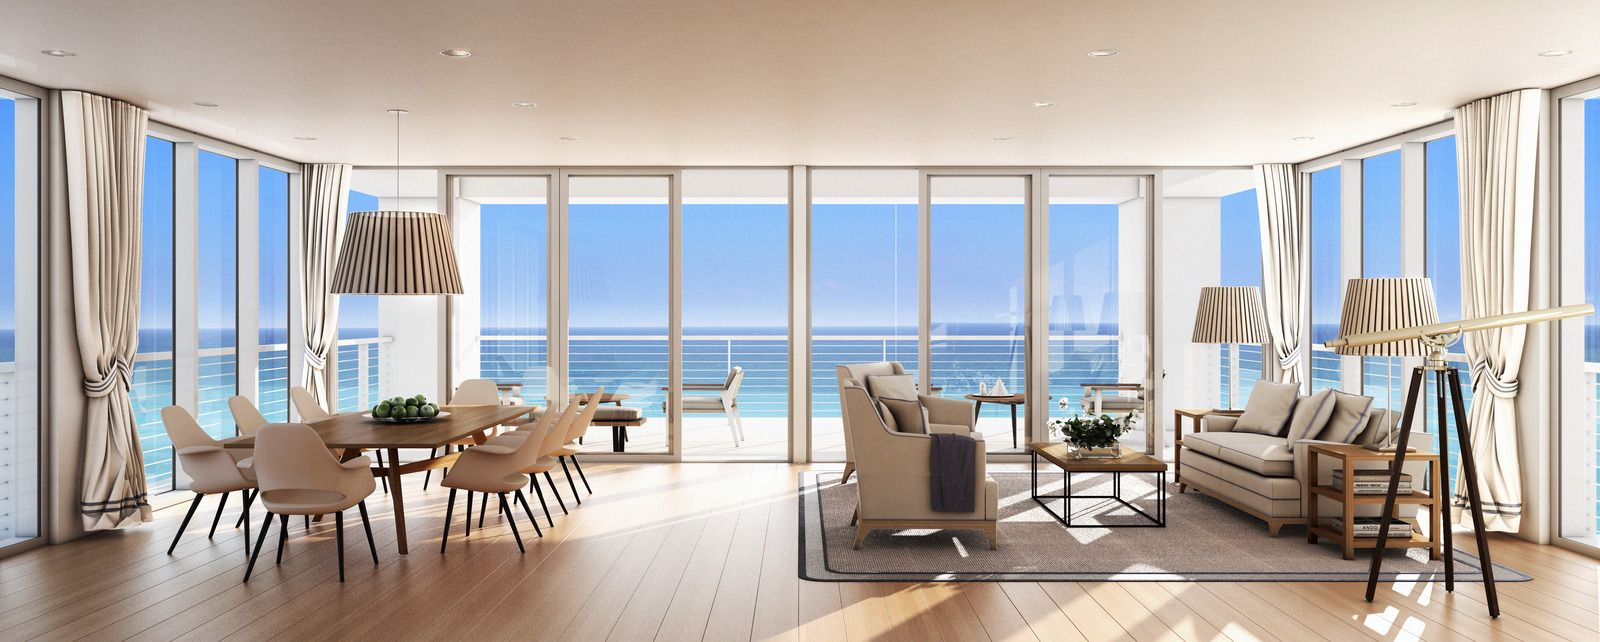 how luxury developers differentiate their product condo interior designcondo - Luxury Beach Home Interiors